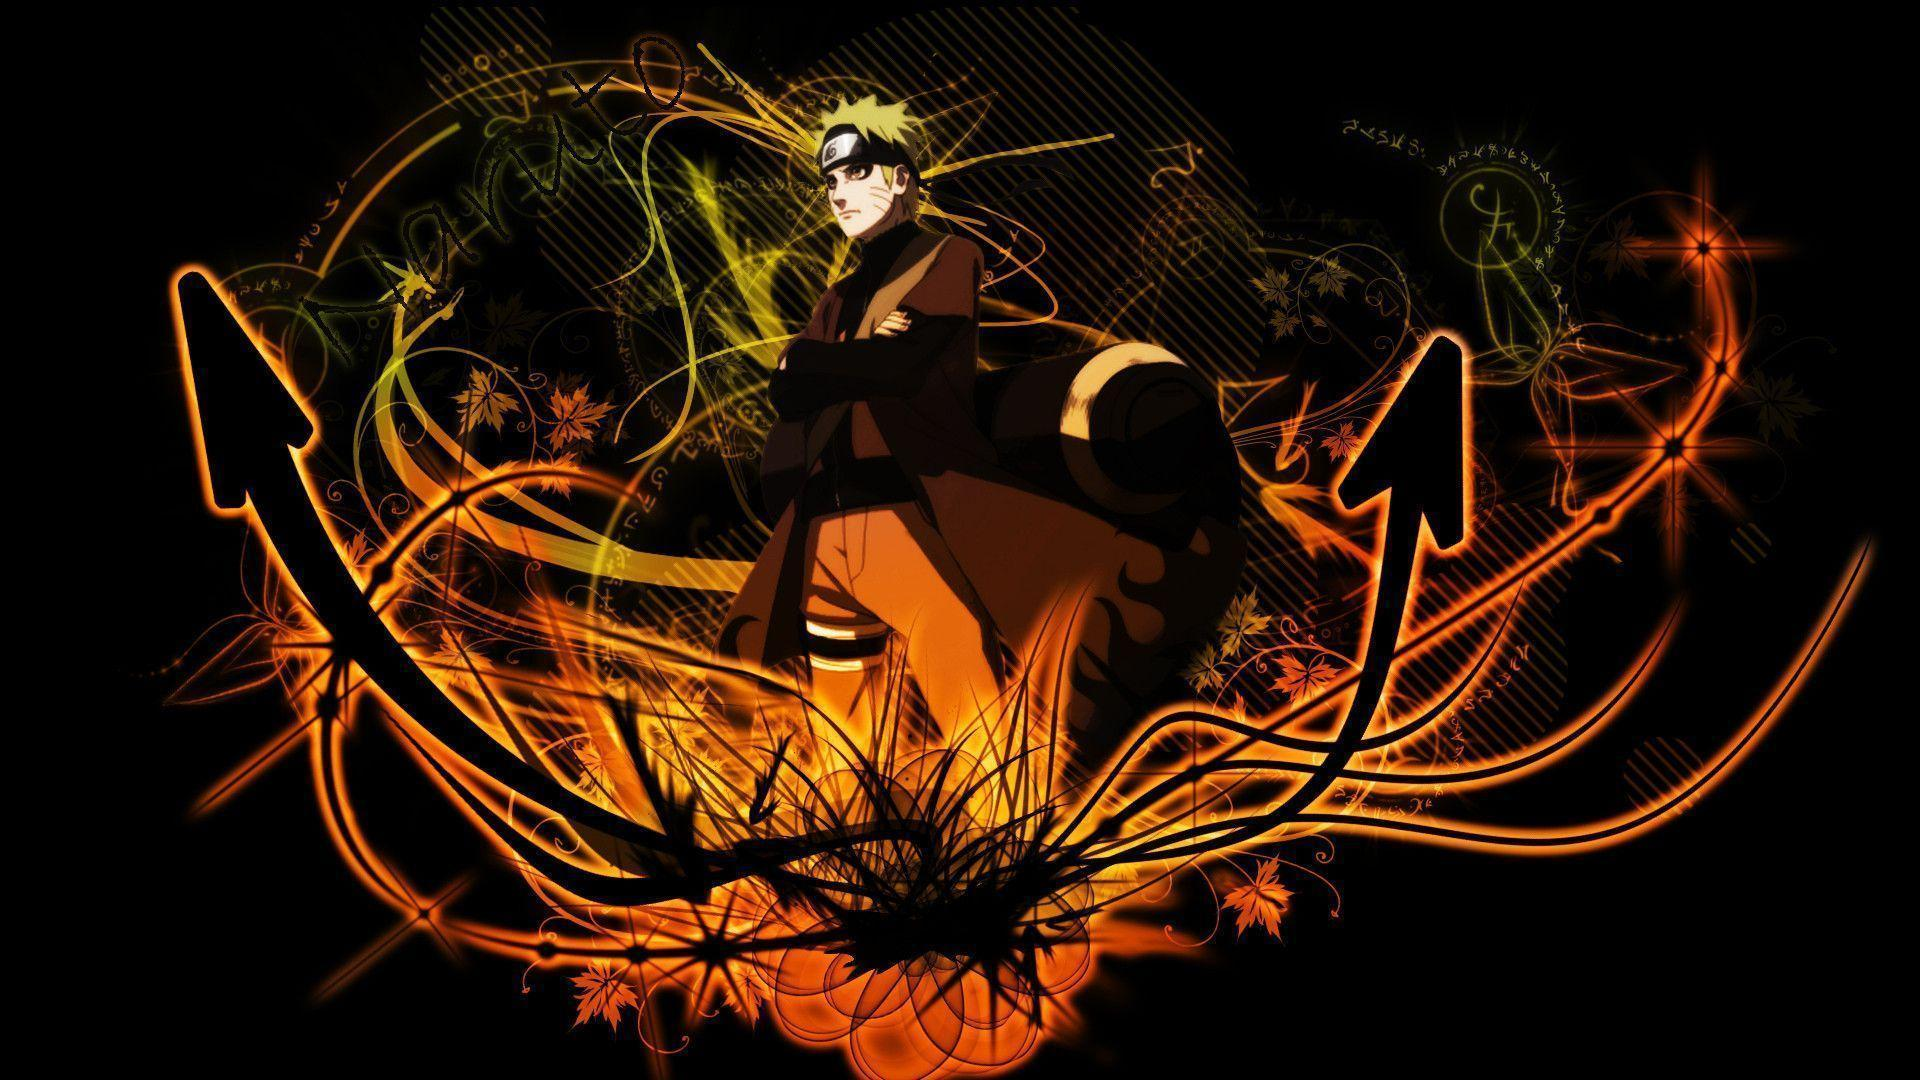 Naruto 1920x1080 Anime Wallpapers